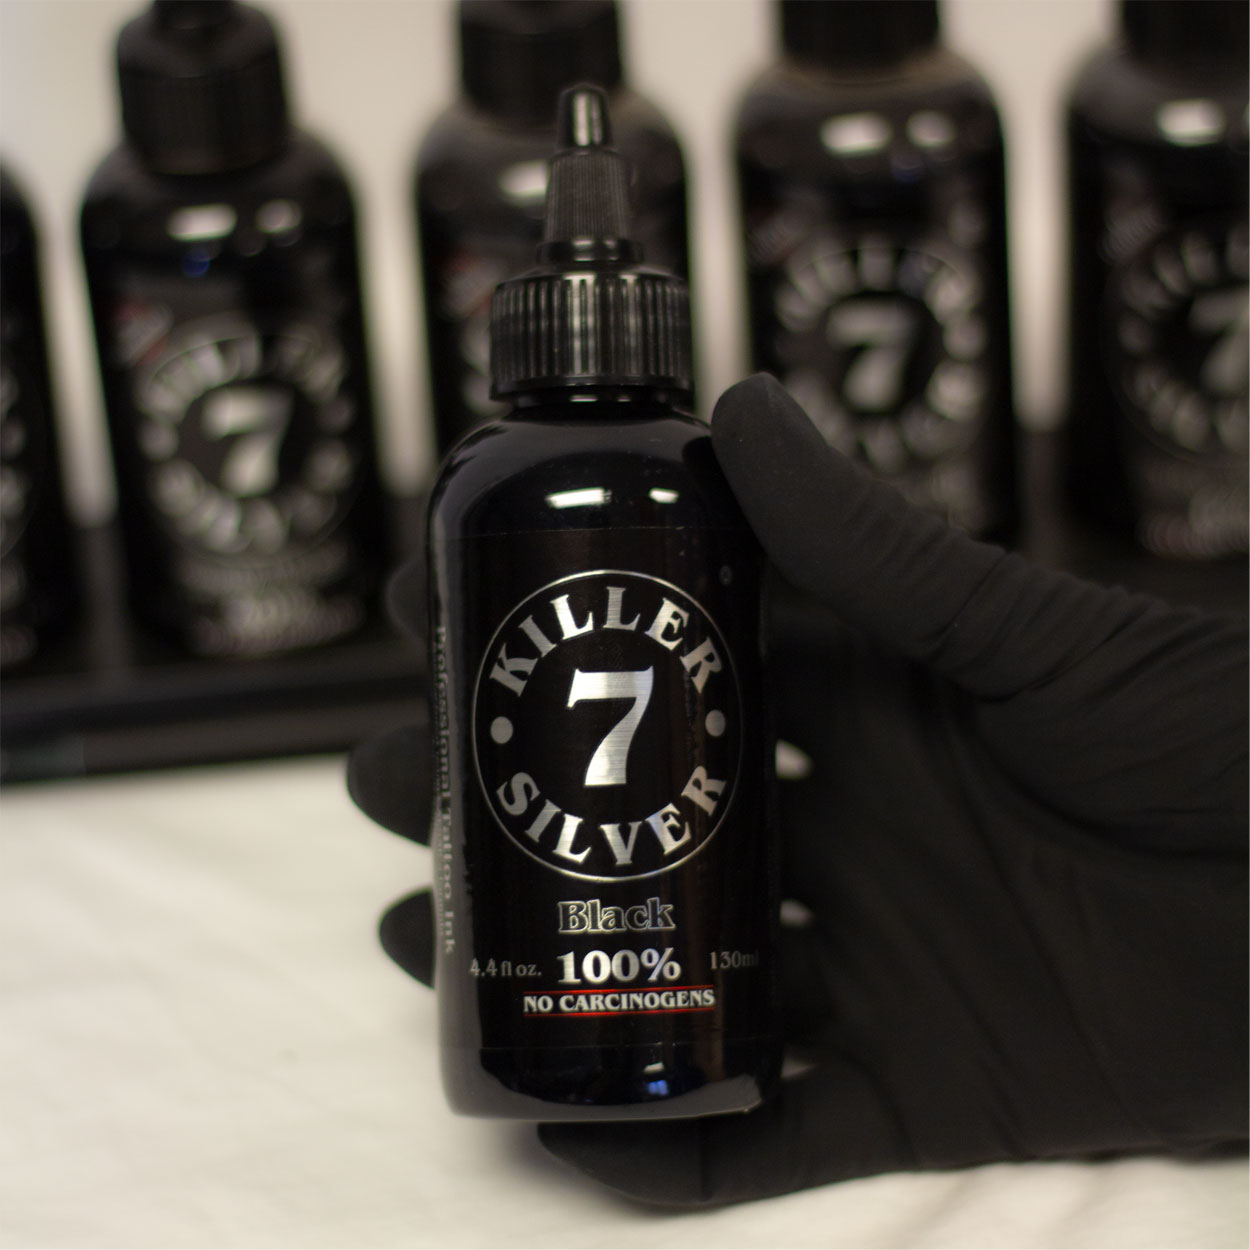 Killer Silver-Black 100%-Tattoo Ink-4.4 oz.-Pitch Black Perfection